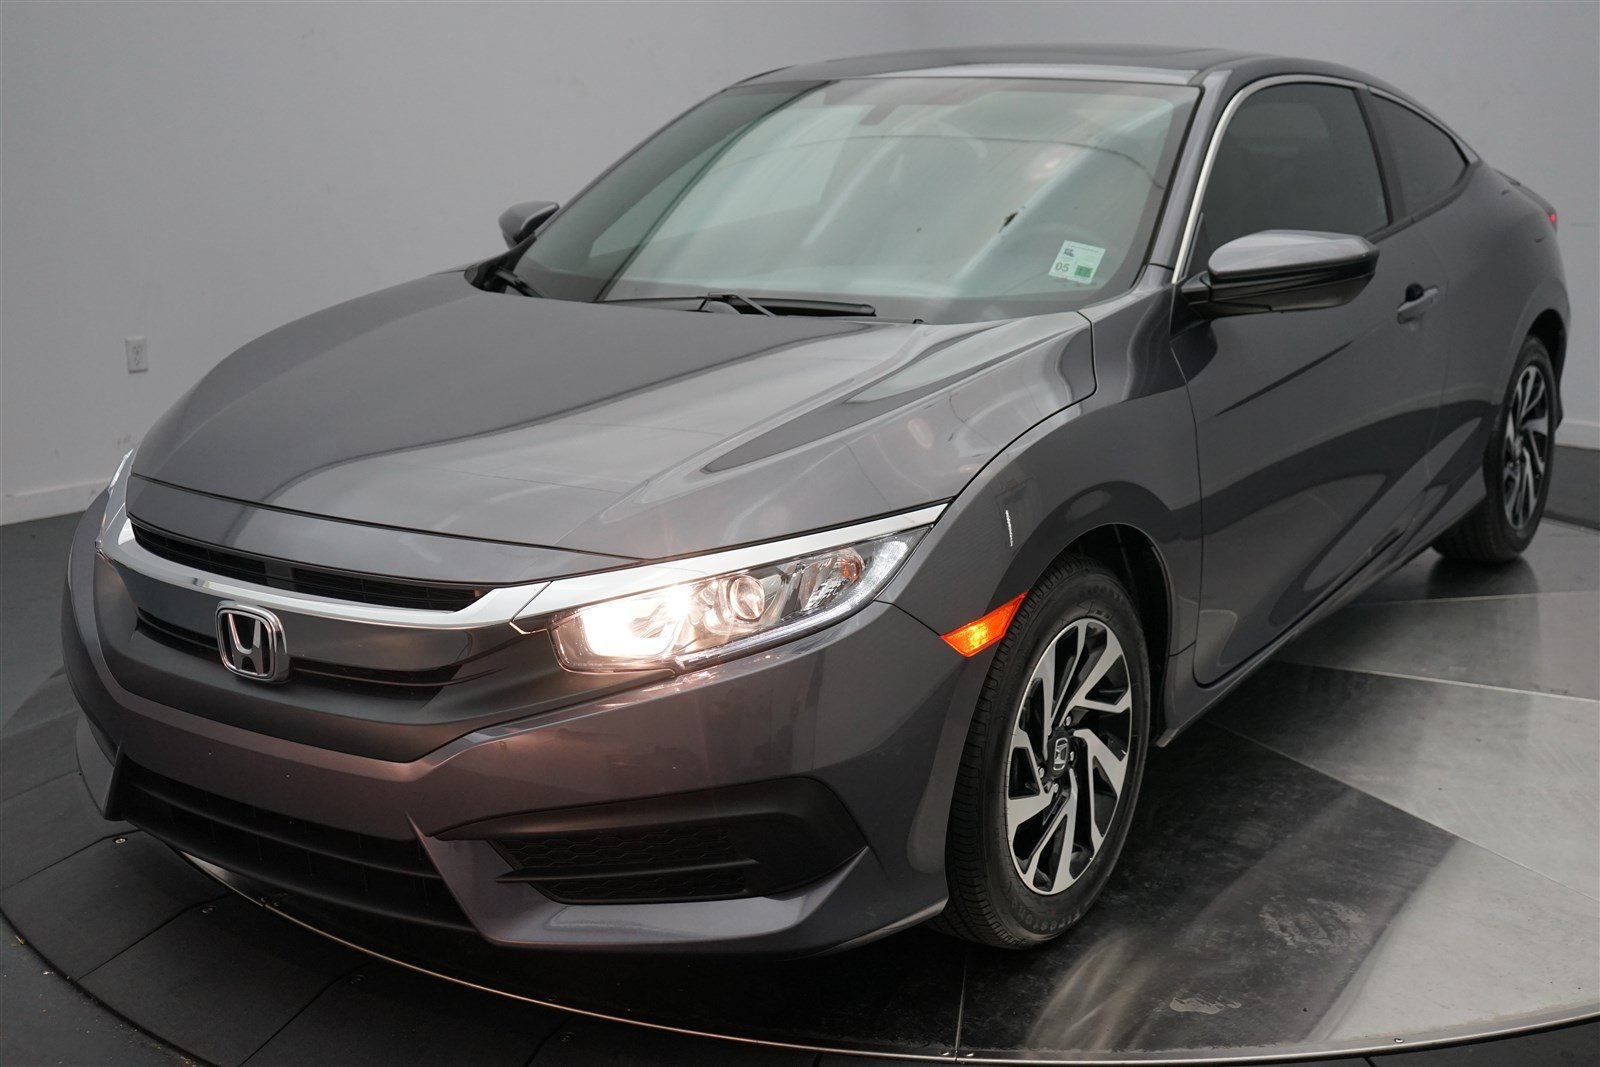 certified pre owned 2016 honda civic coupe lx p 2dr car in shreveport 4194a holmes honda. Black Bedroom Furniture Sets. Home Design Ideas